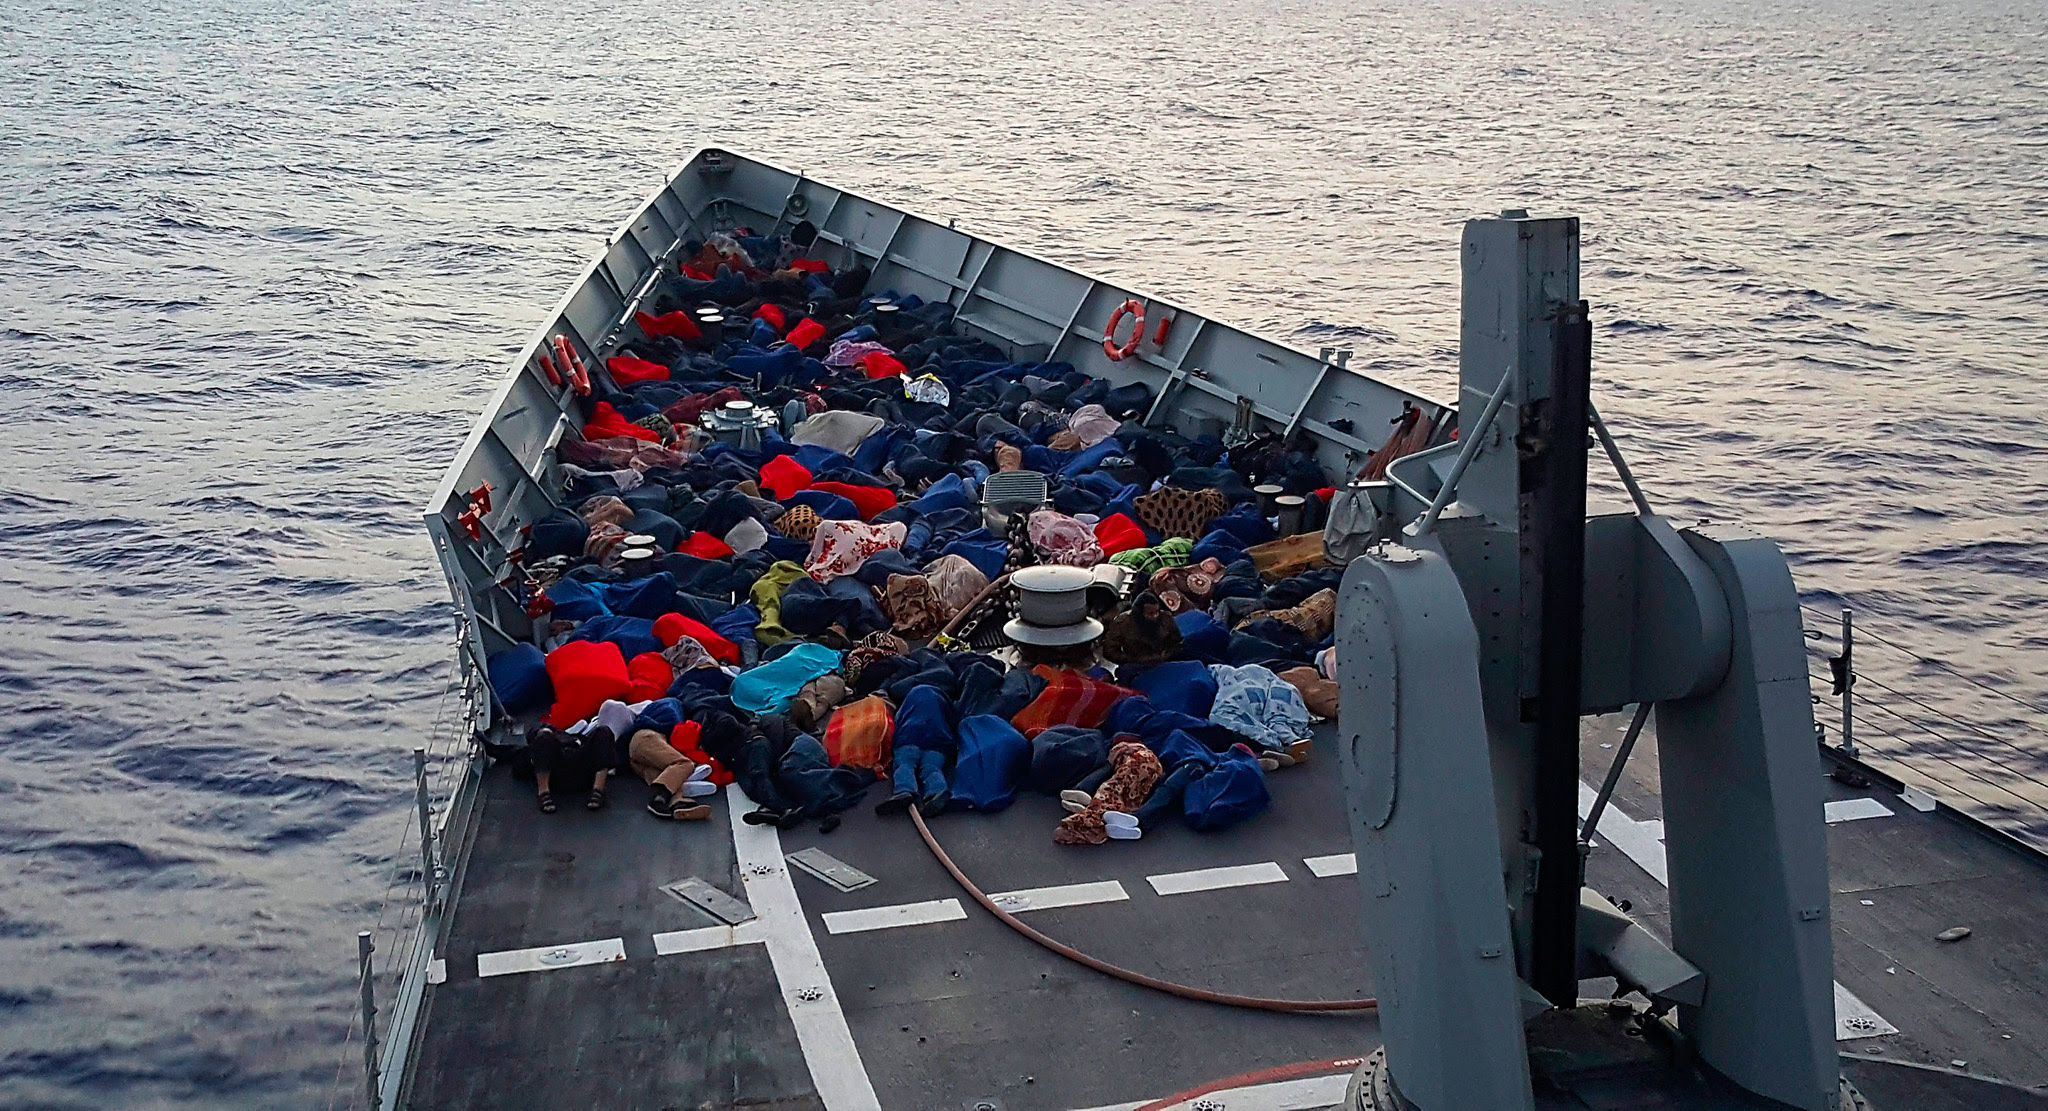 epa05349409 An undated handout picture made available on 07 June 2016 by the Spanish Army shows migrants after being rescued by Spanish frigate 'Reina Sofia' (Queen Sofia) at sea near Italian coasts, during the Operation 'Sophia', a European Union Naval Force's (EUNAVFOR) mission to prevent loss of life at sea in the Mediterranean Sea.  EPA/SPANISH ARMY  HANDOUT EDITORIAL USE ONLY/NO SALES